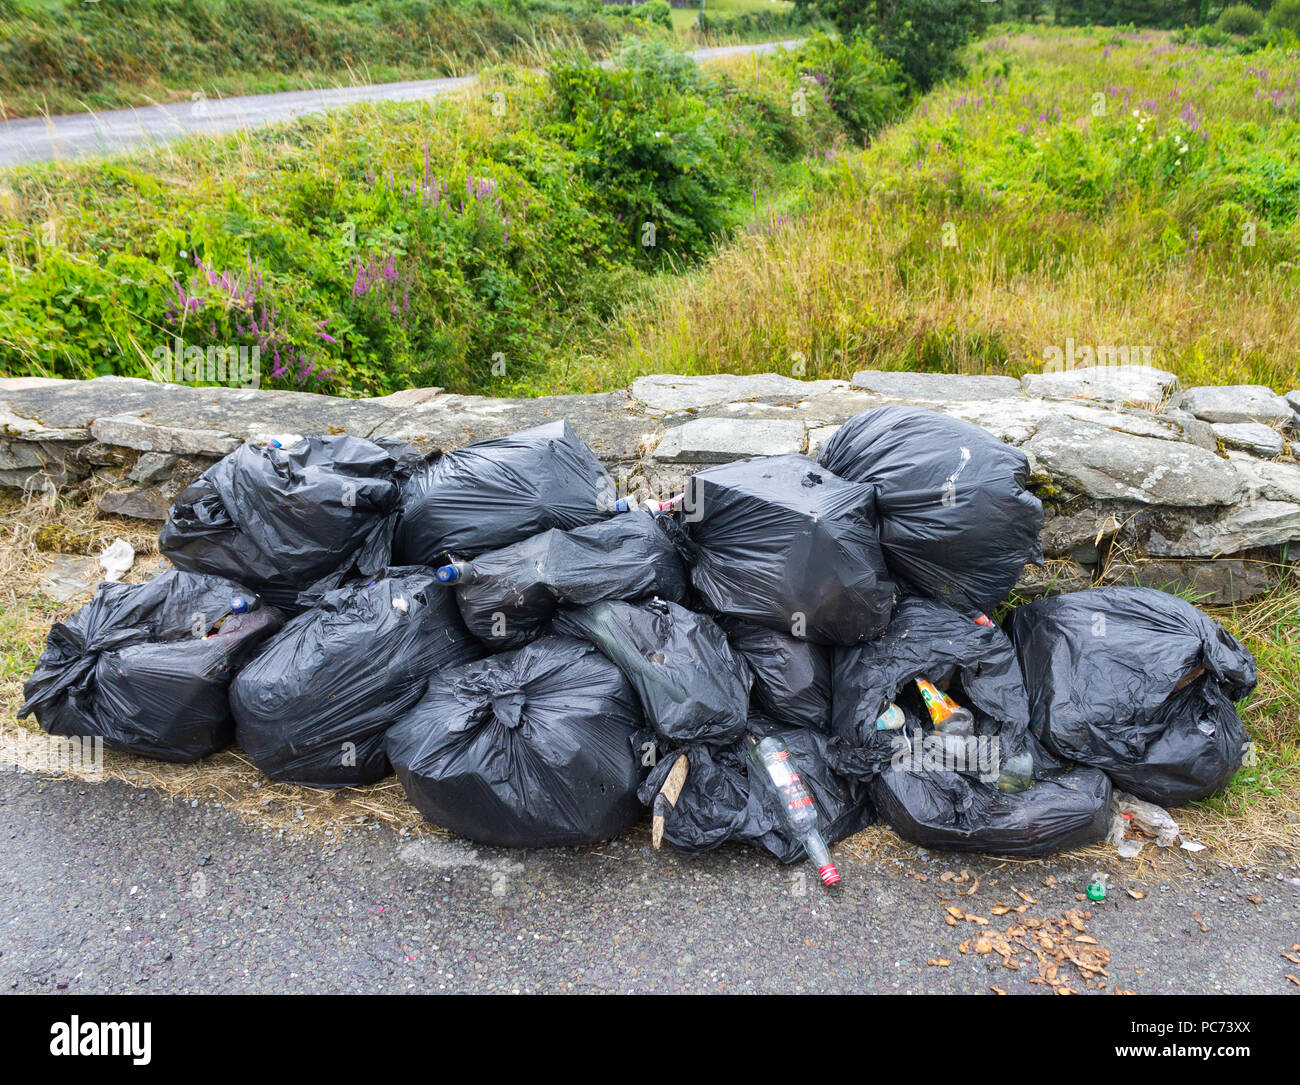 plastic garbage bags filled with rotting rubbish dumped on the roadside. - Stock Image